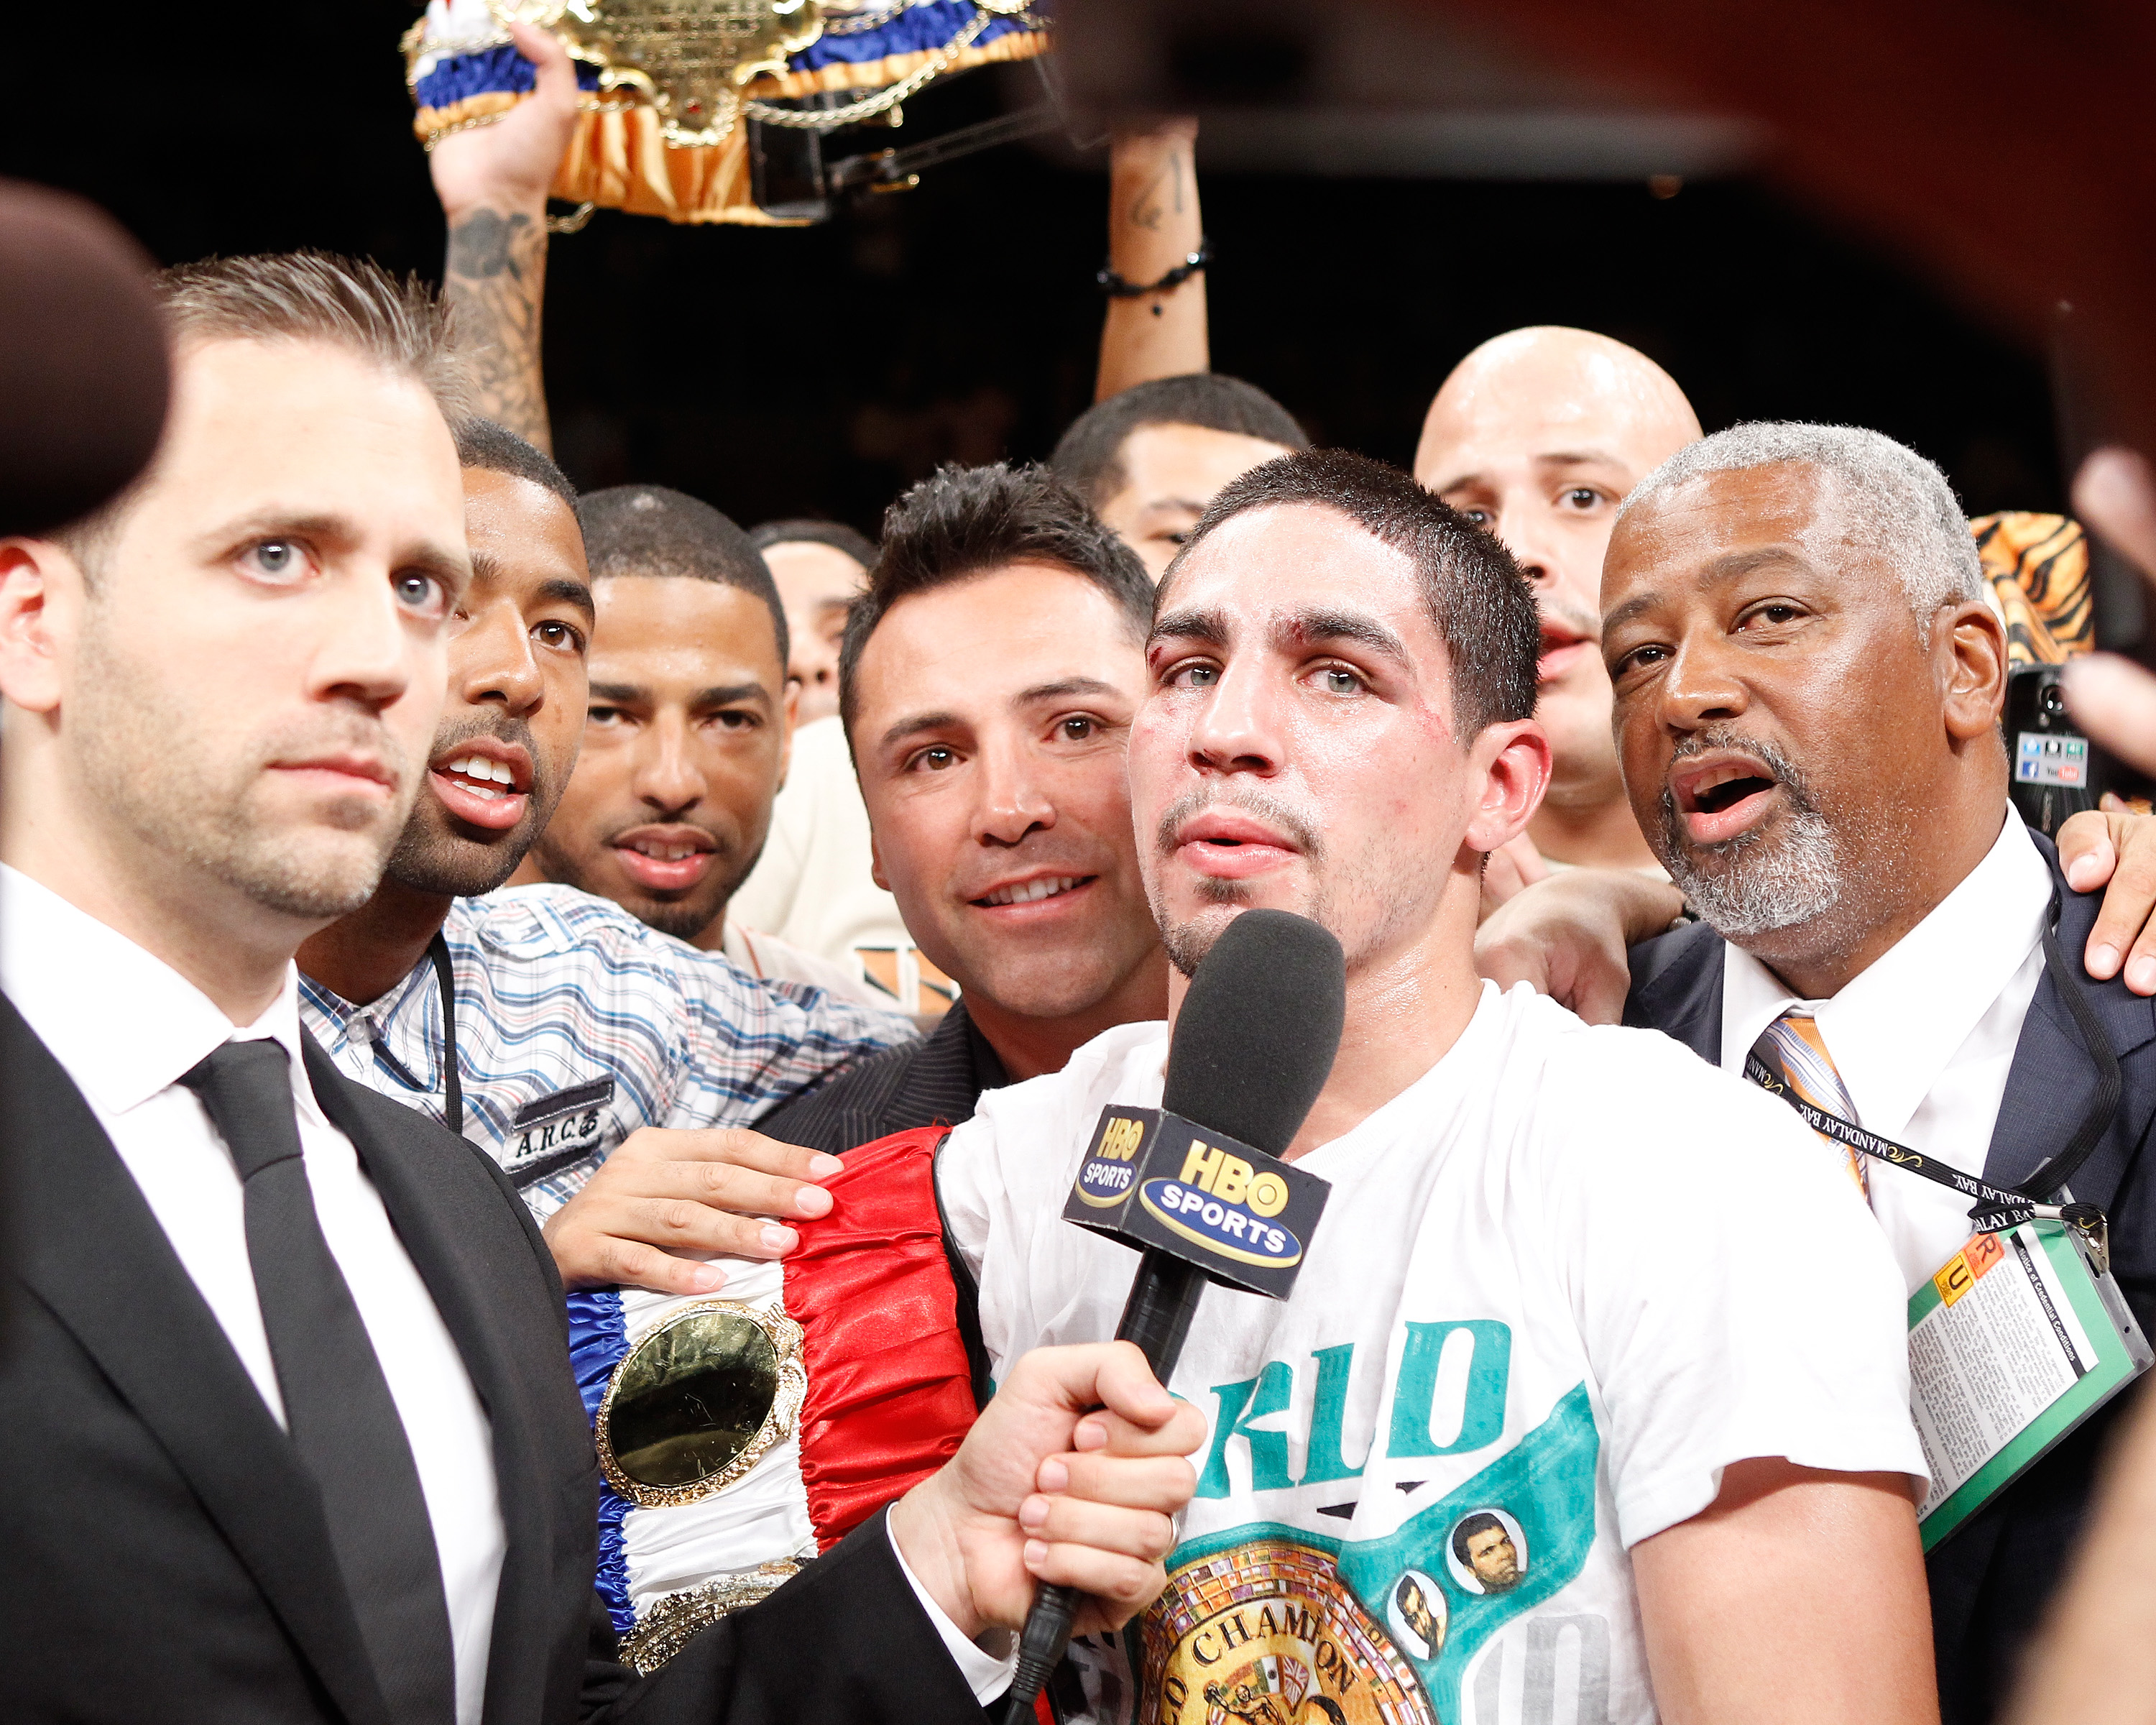 Max Kellerman interviews Danny Garcia after a win. (Photo credit: Craig Bennett/112575 Media Inc))